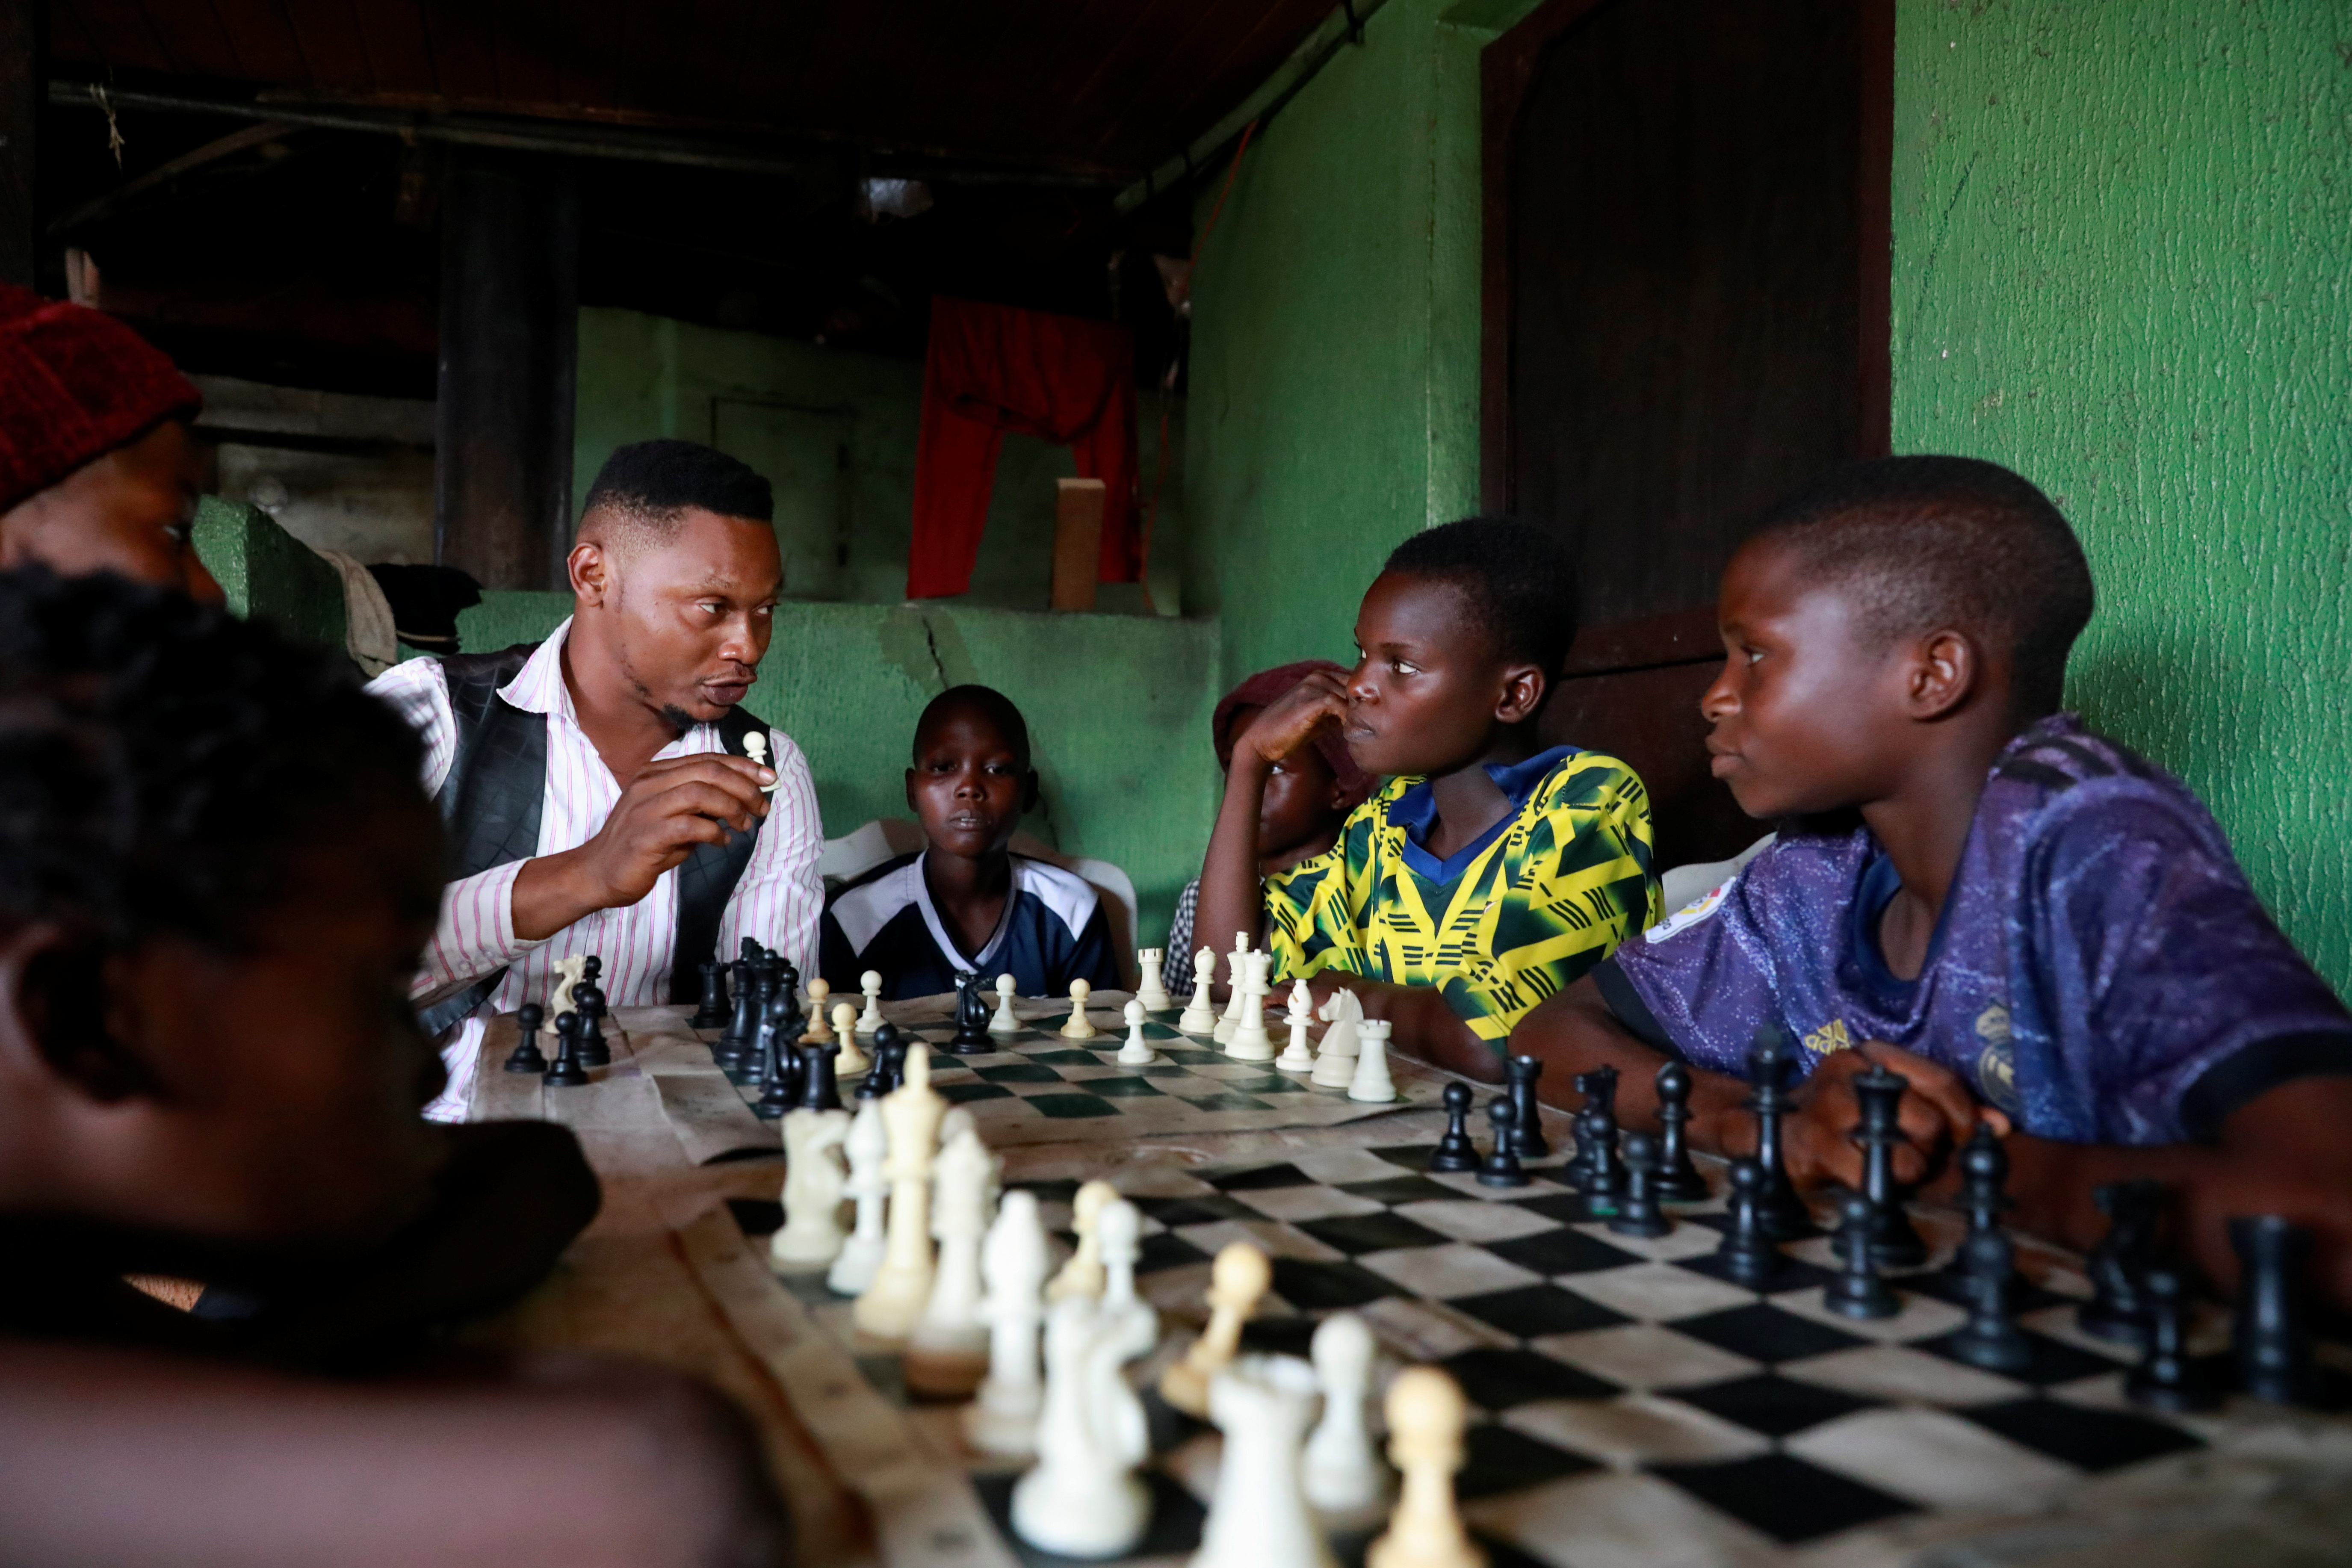 A chess tutor teaches children chess at a community palace in Makoko, Lagos, Nigeria May 5, 2021.  REUTERS/Temilade Adelaja